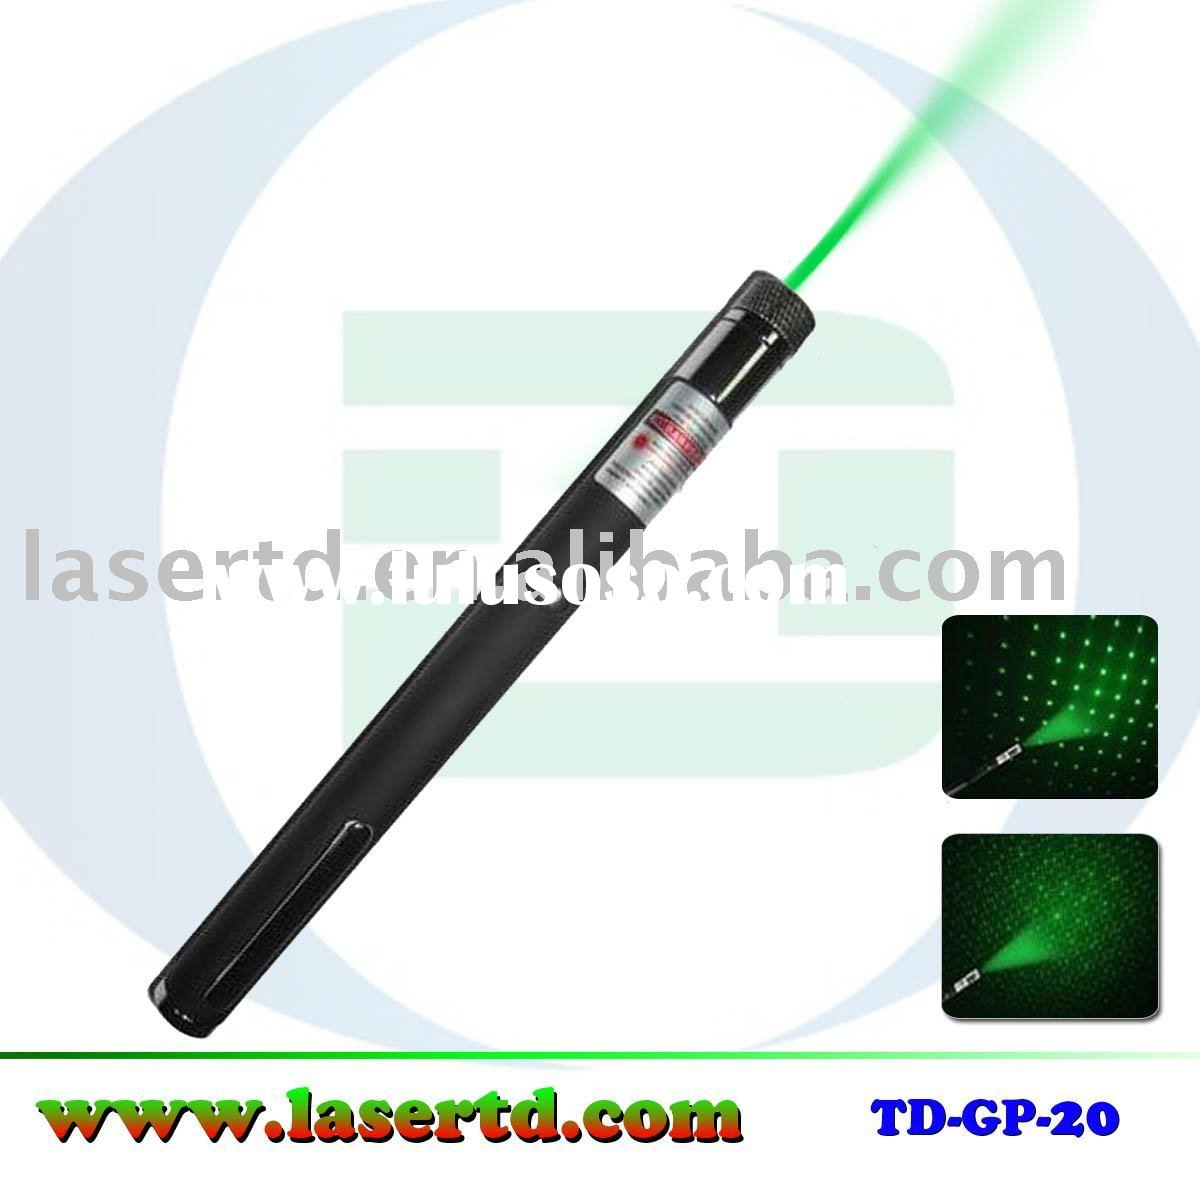 High power green laser pointer 2 in 1 with star cap creating stars for party